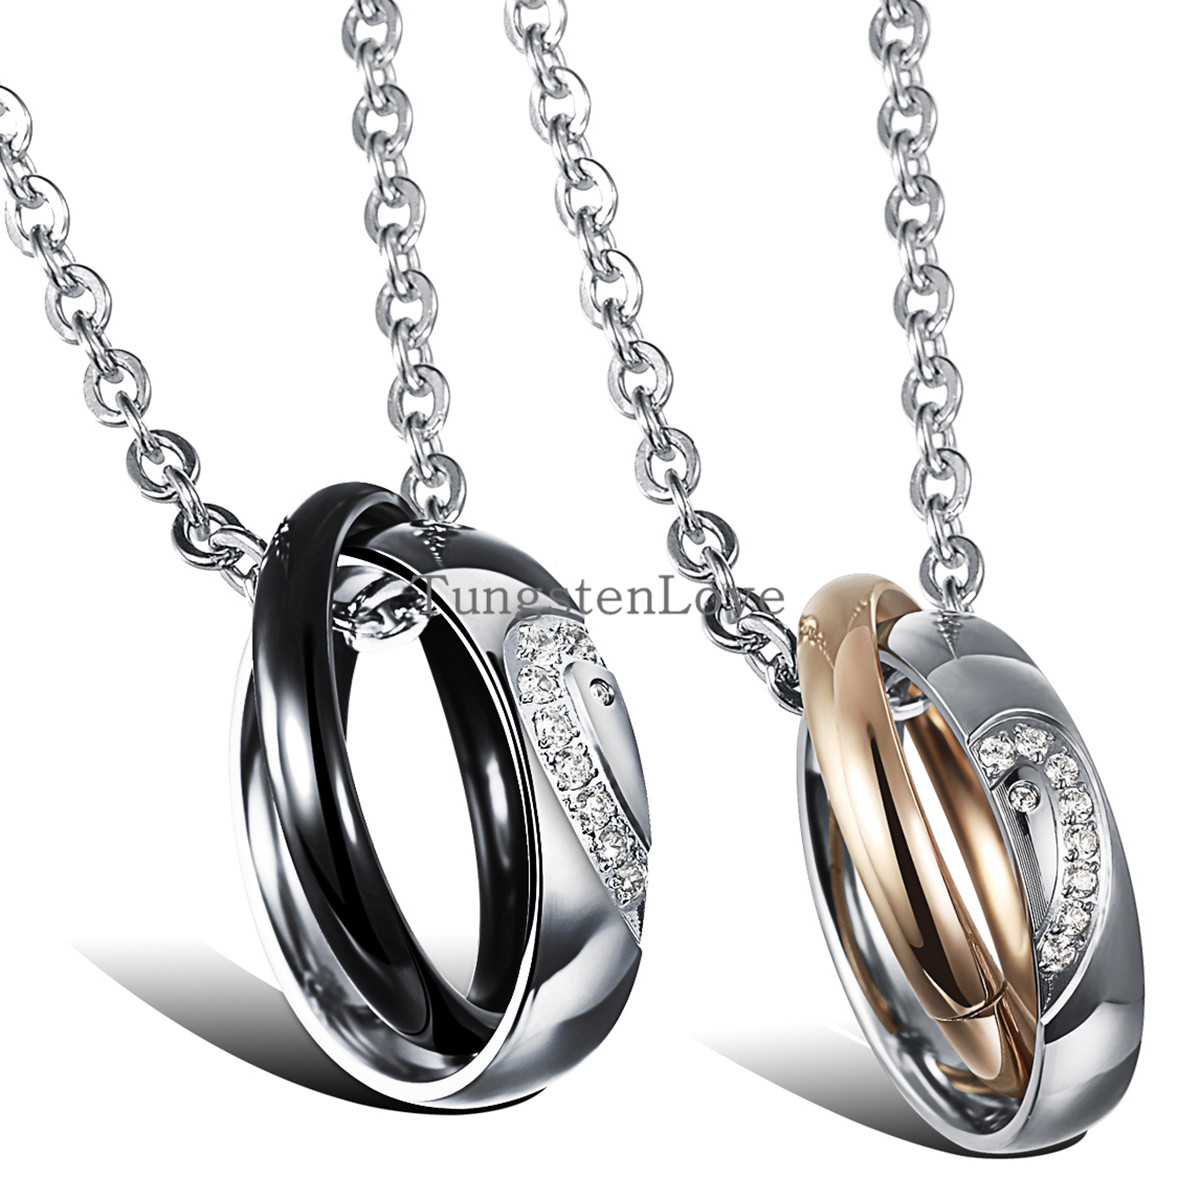 Wholesale Fashion Jewelry Lovers Titanium Steel Rhinestone Pendant Necklace Black & Gold Matching Heart Men Women collares 2015(China (Mainland))